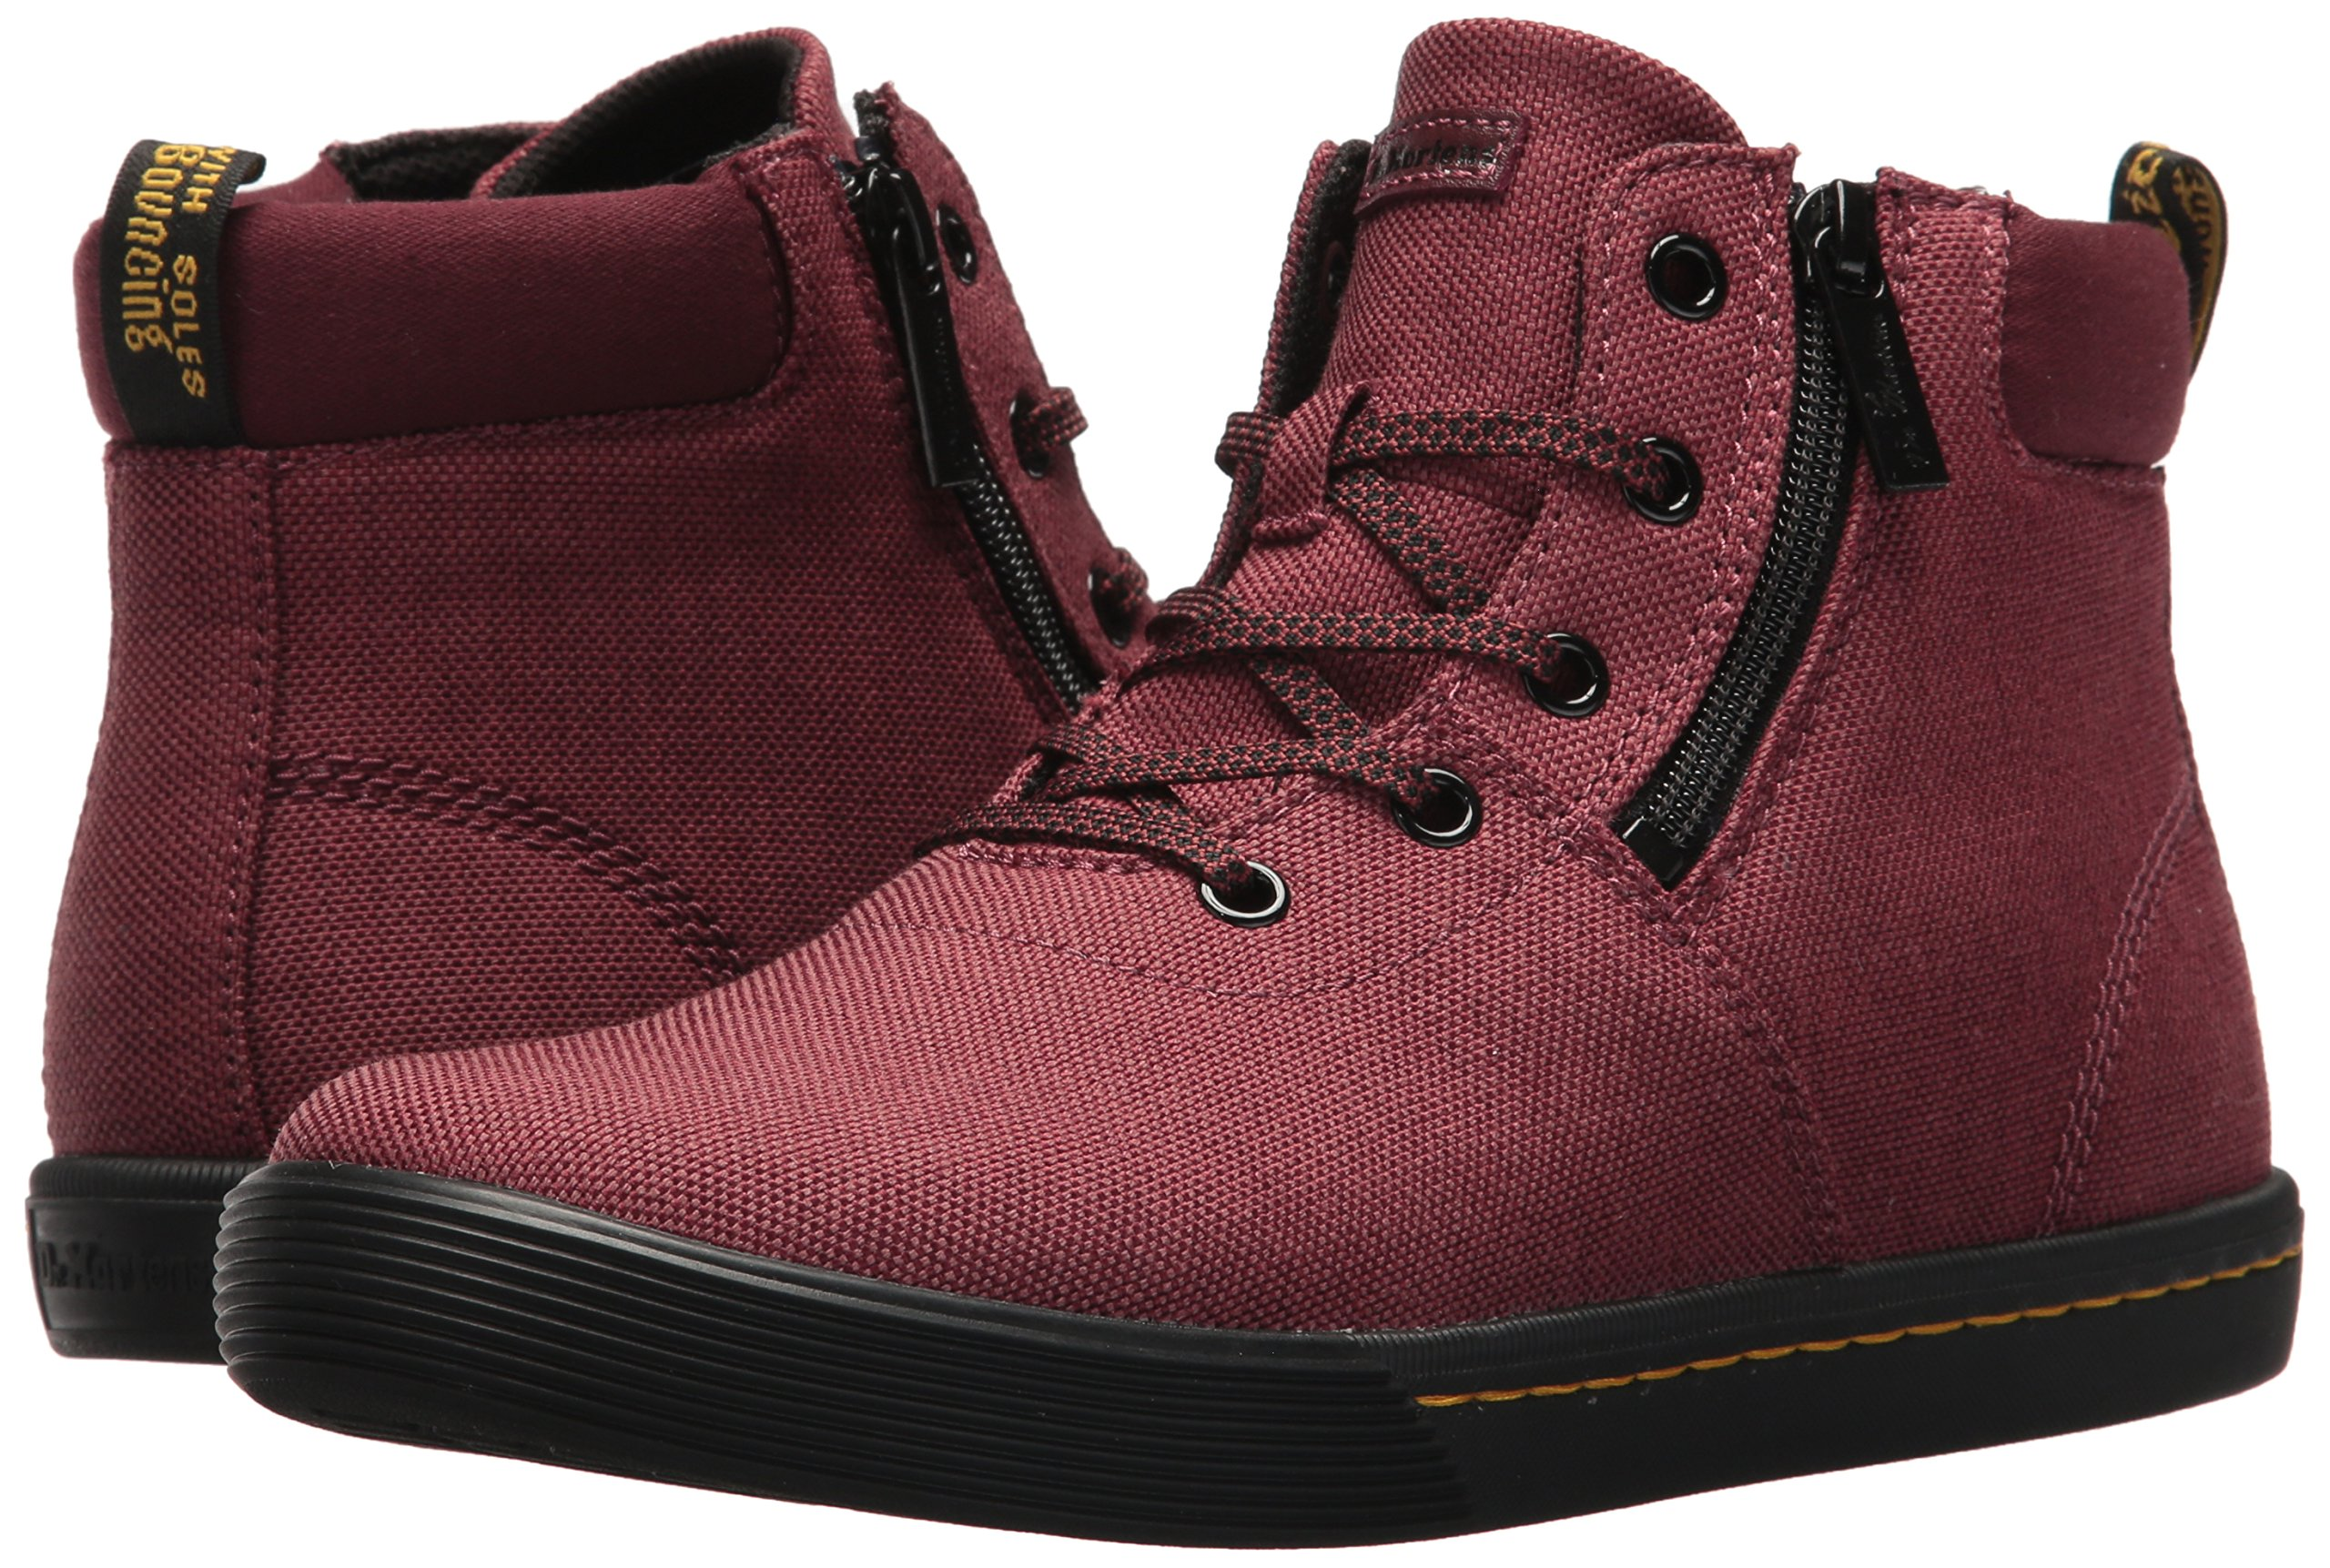 Dr. Martens Women's Maegley Fashion Boot, Cherry Red Woven Textile+Fine Canvas, 5 Medium UK (7 US) by Dr. Martens (Image #6)